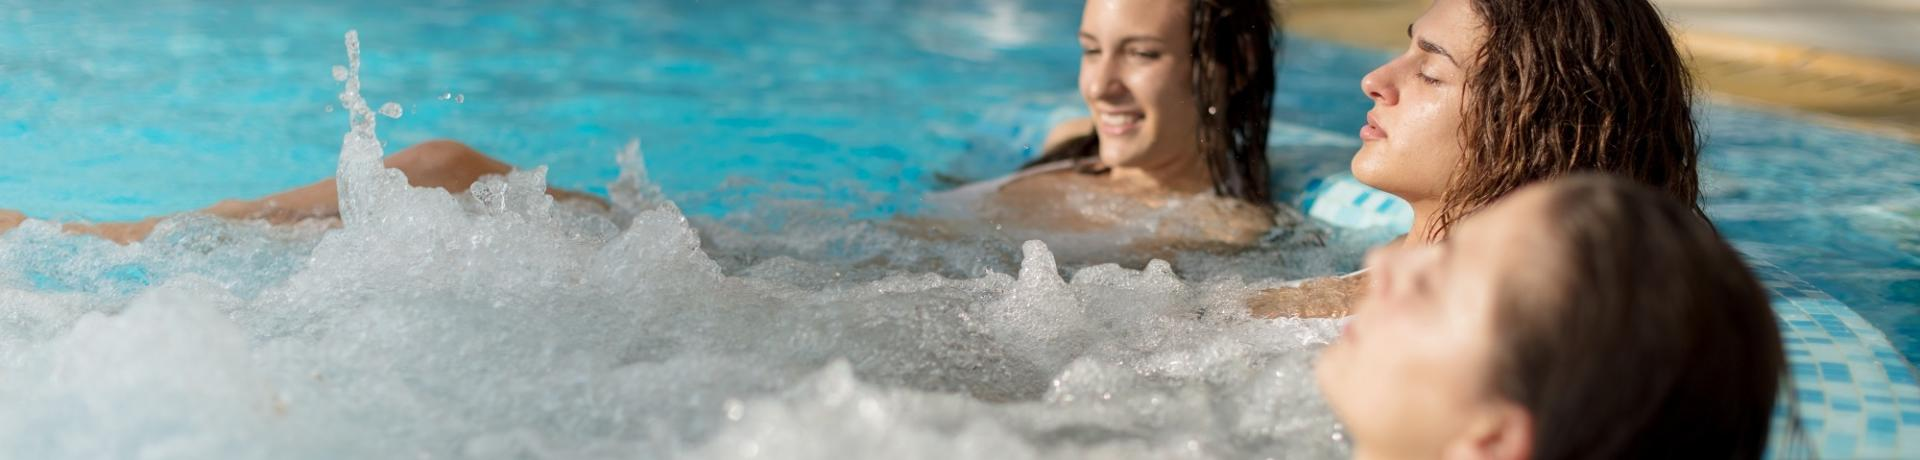 Wellness Hotel Frauen Spa